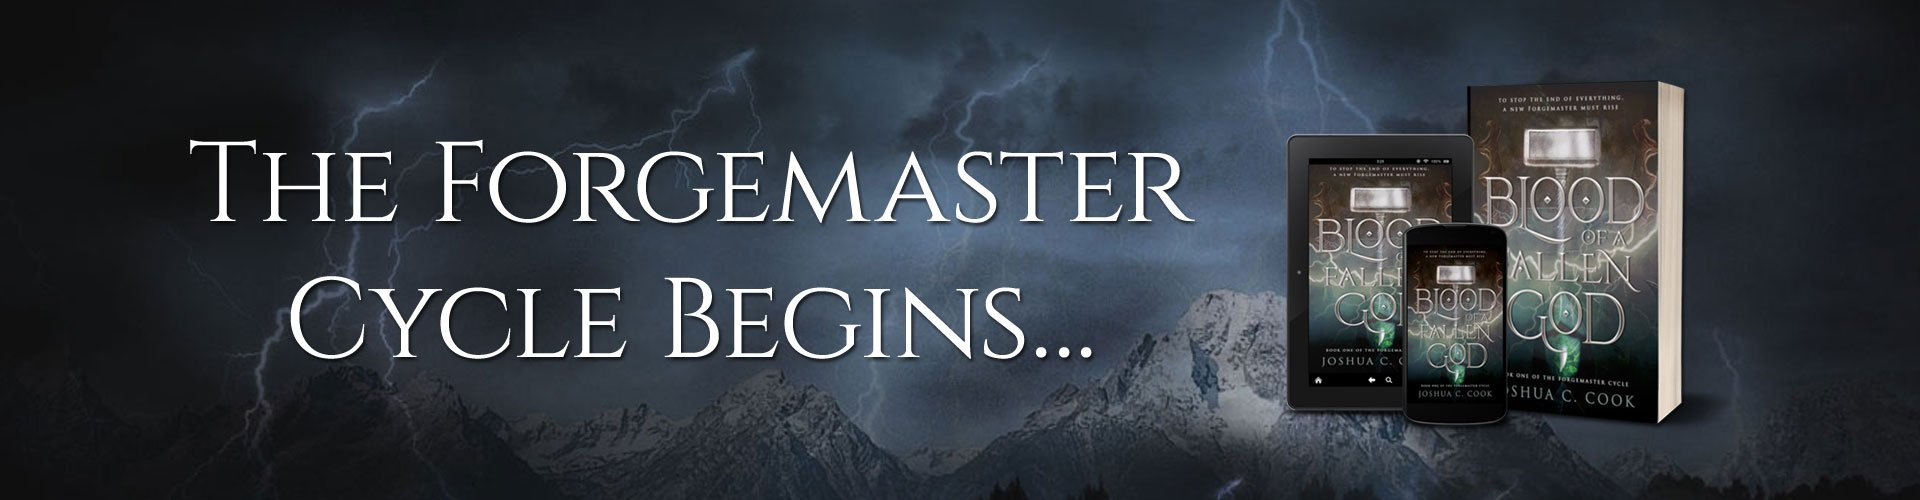 The Forgemaster Cycle Begins...